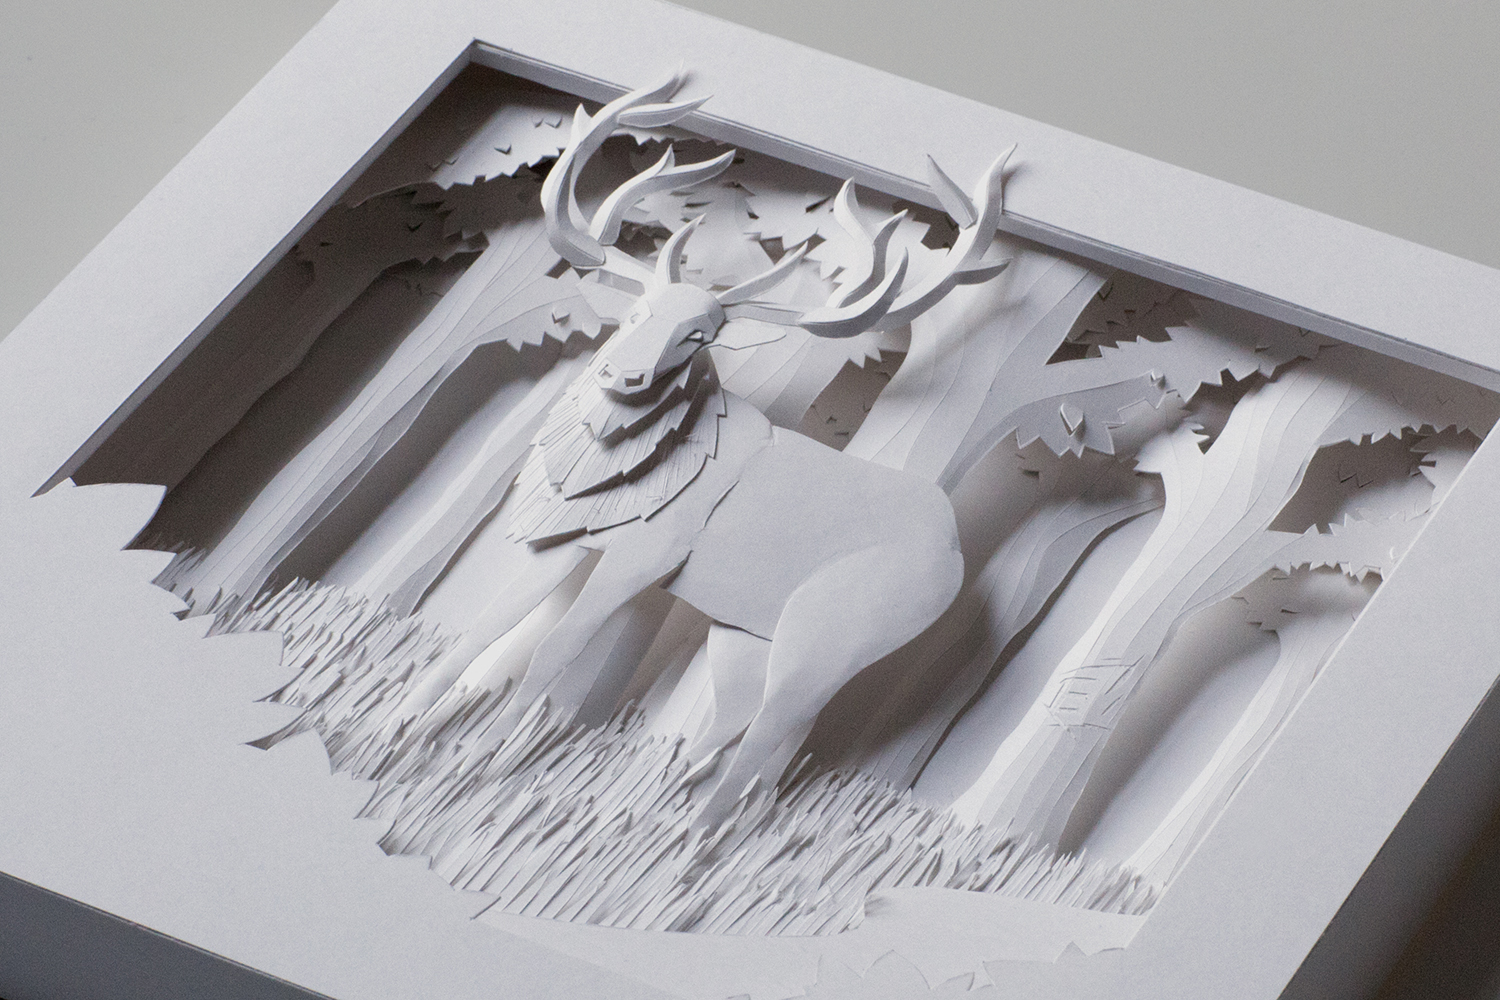 PaperSculpture_02.jpg